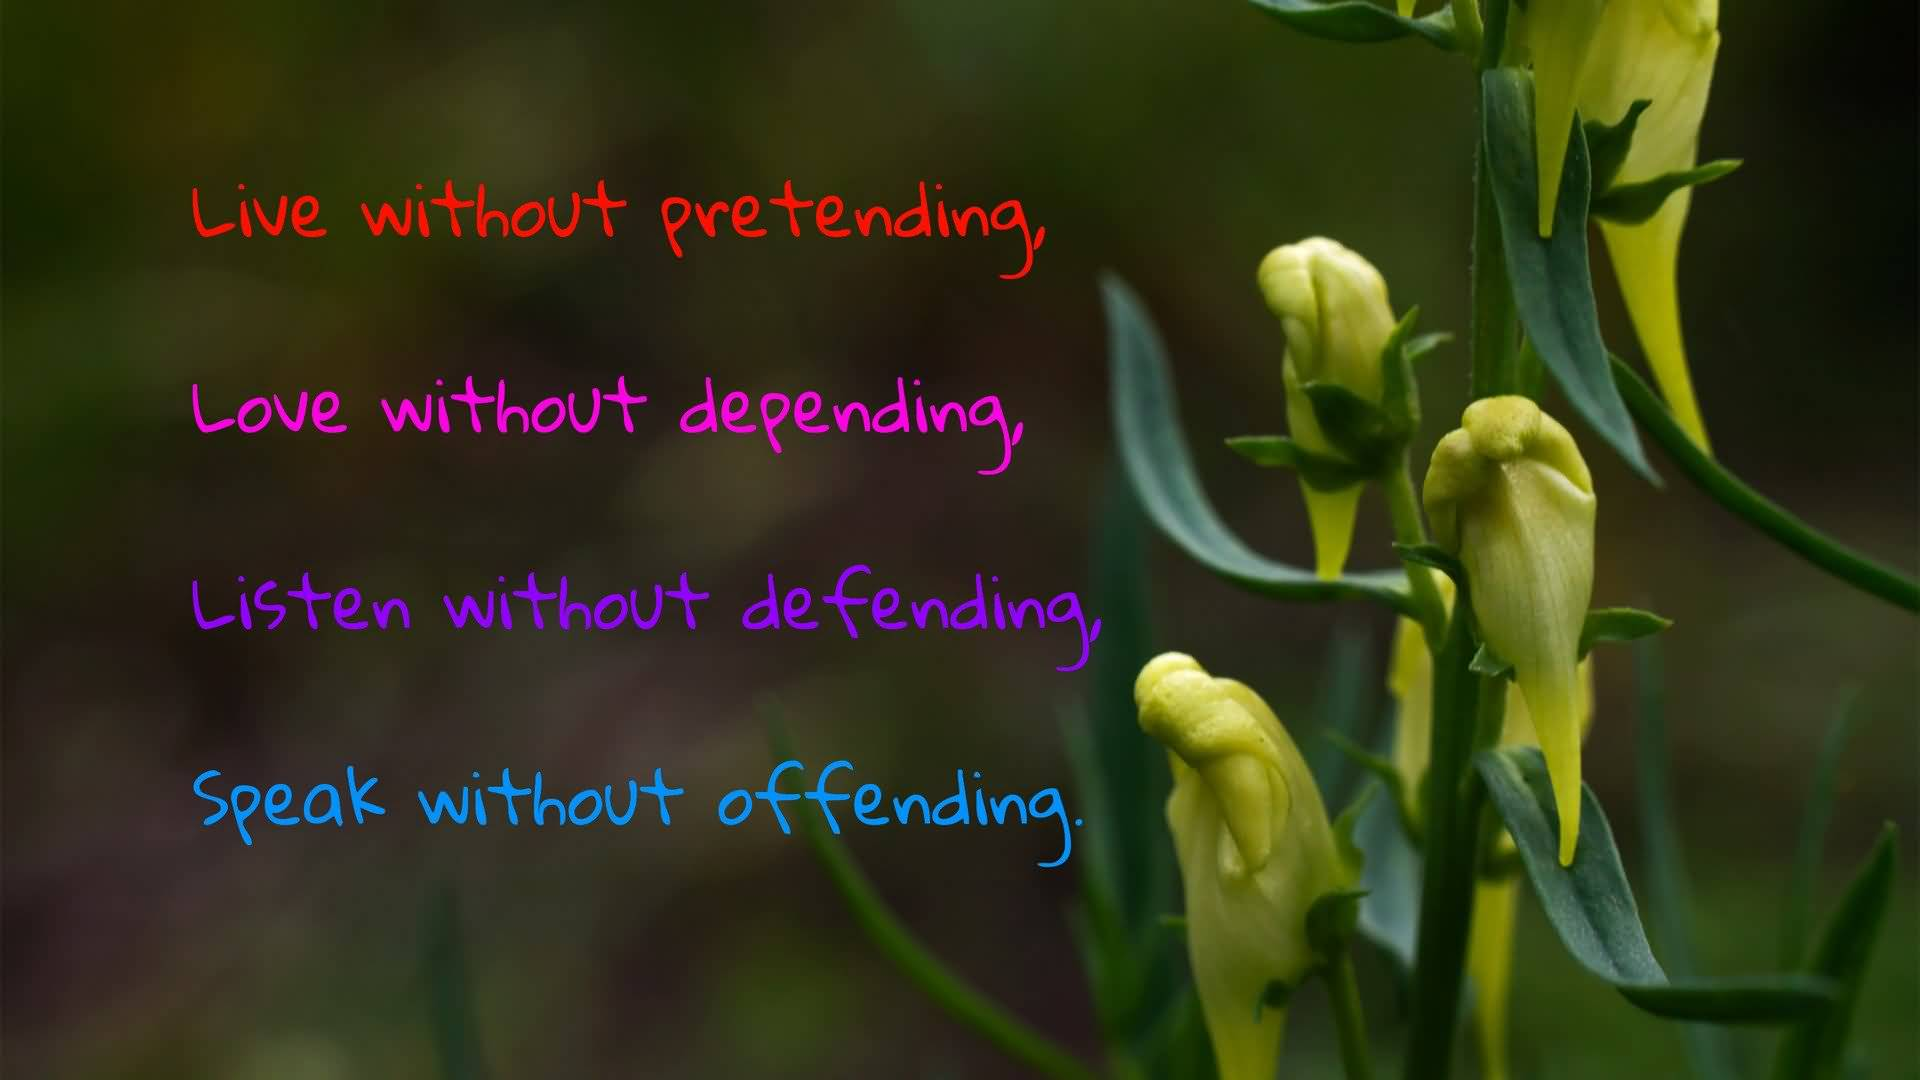 Pretending Quotes live without pretending love without depending listen without